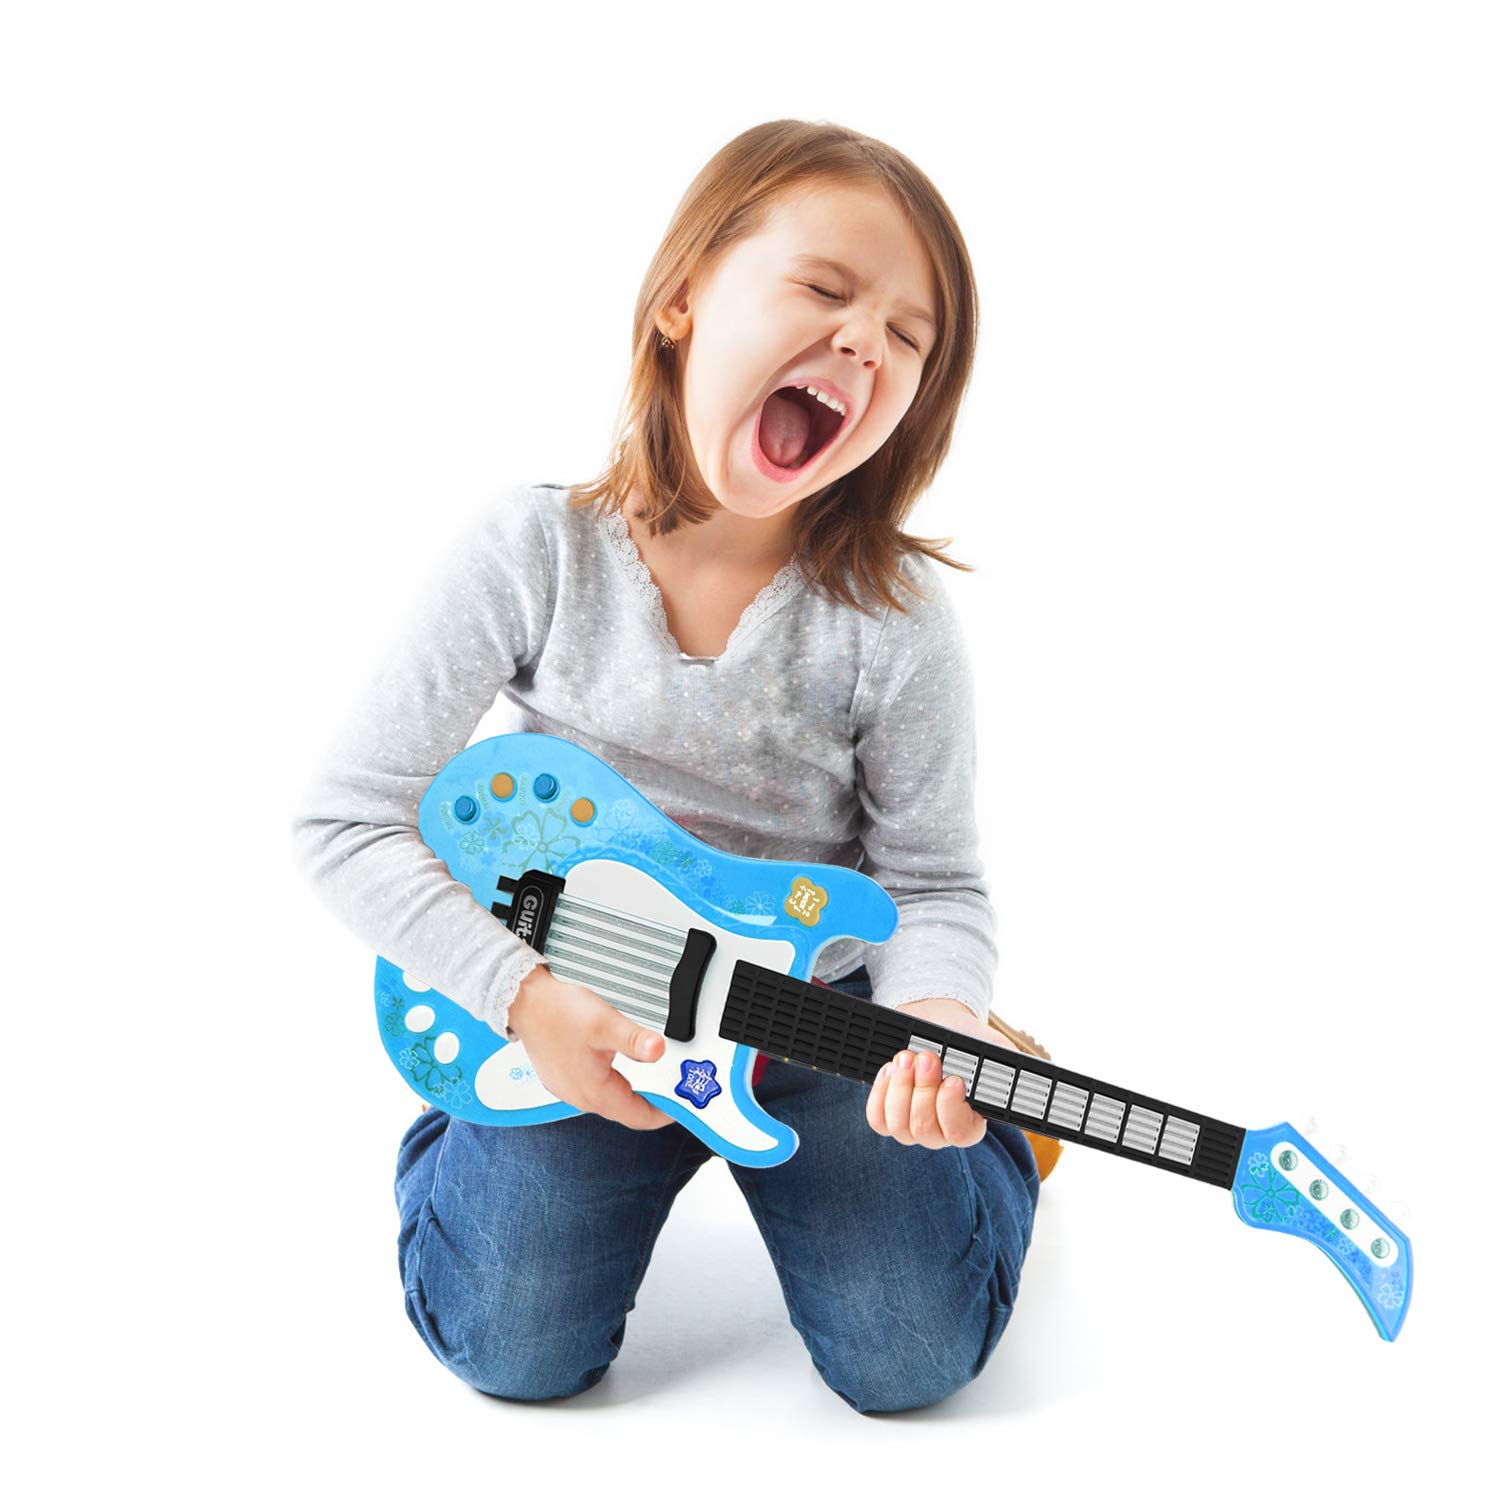 Toys & Games SANLINKEE Toy Guitar for Kids Musical Electric Guitar Toys Kids Guitar with Vibrant Sounds Music Toy for Kids Great for Boys Girls Guitars & Strings